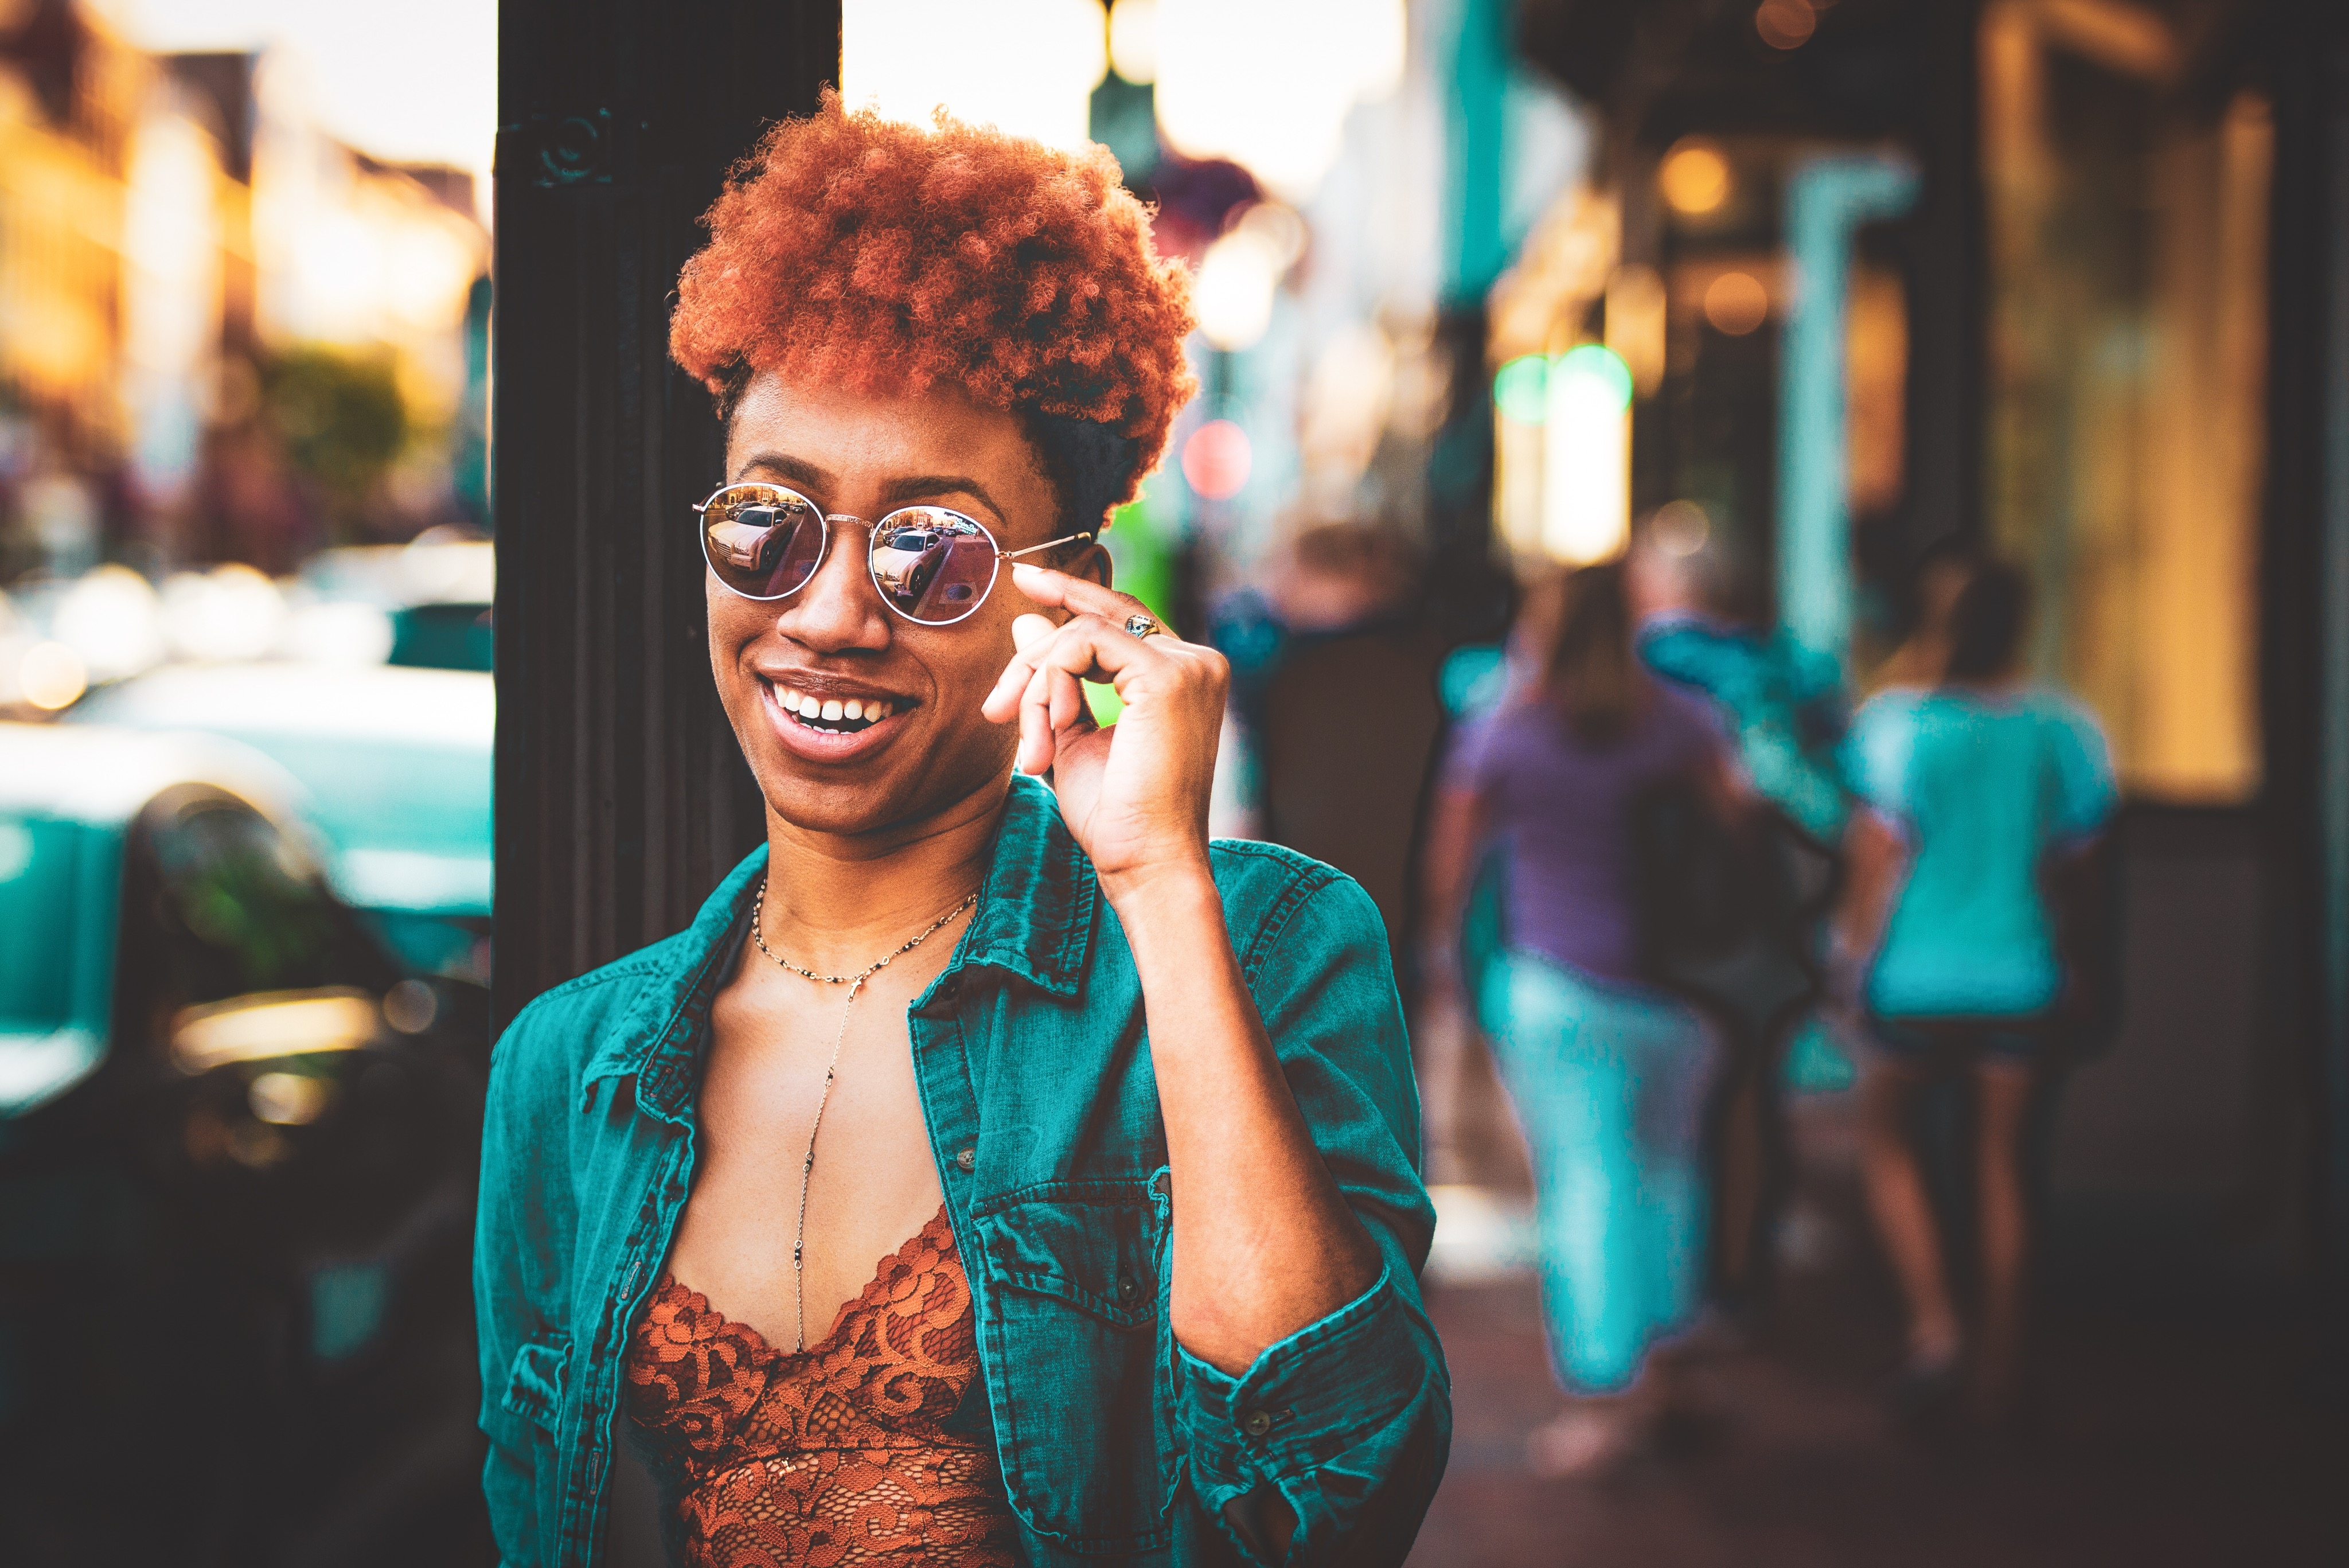 Black girl with short natural hair and sunglasses